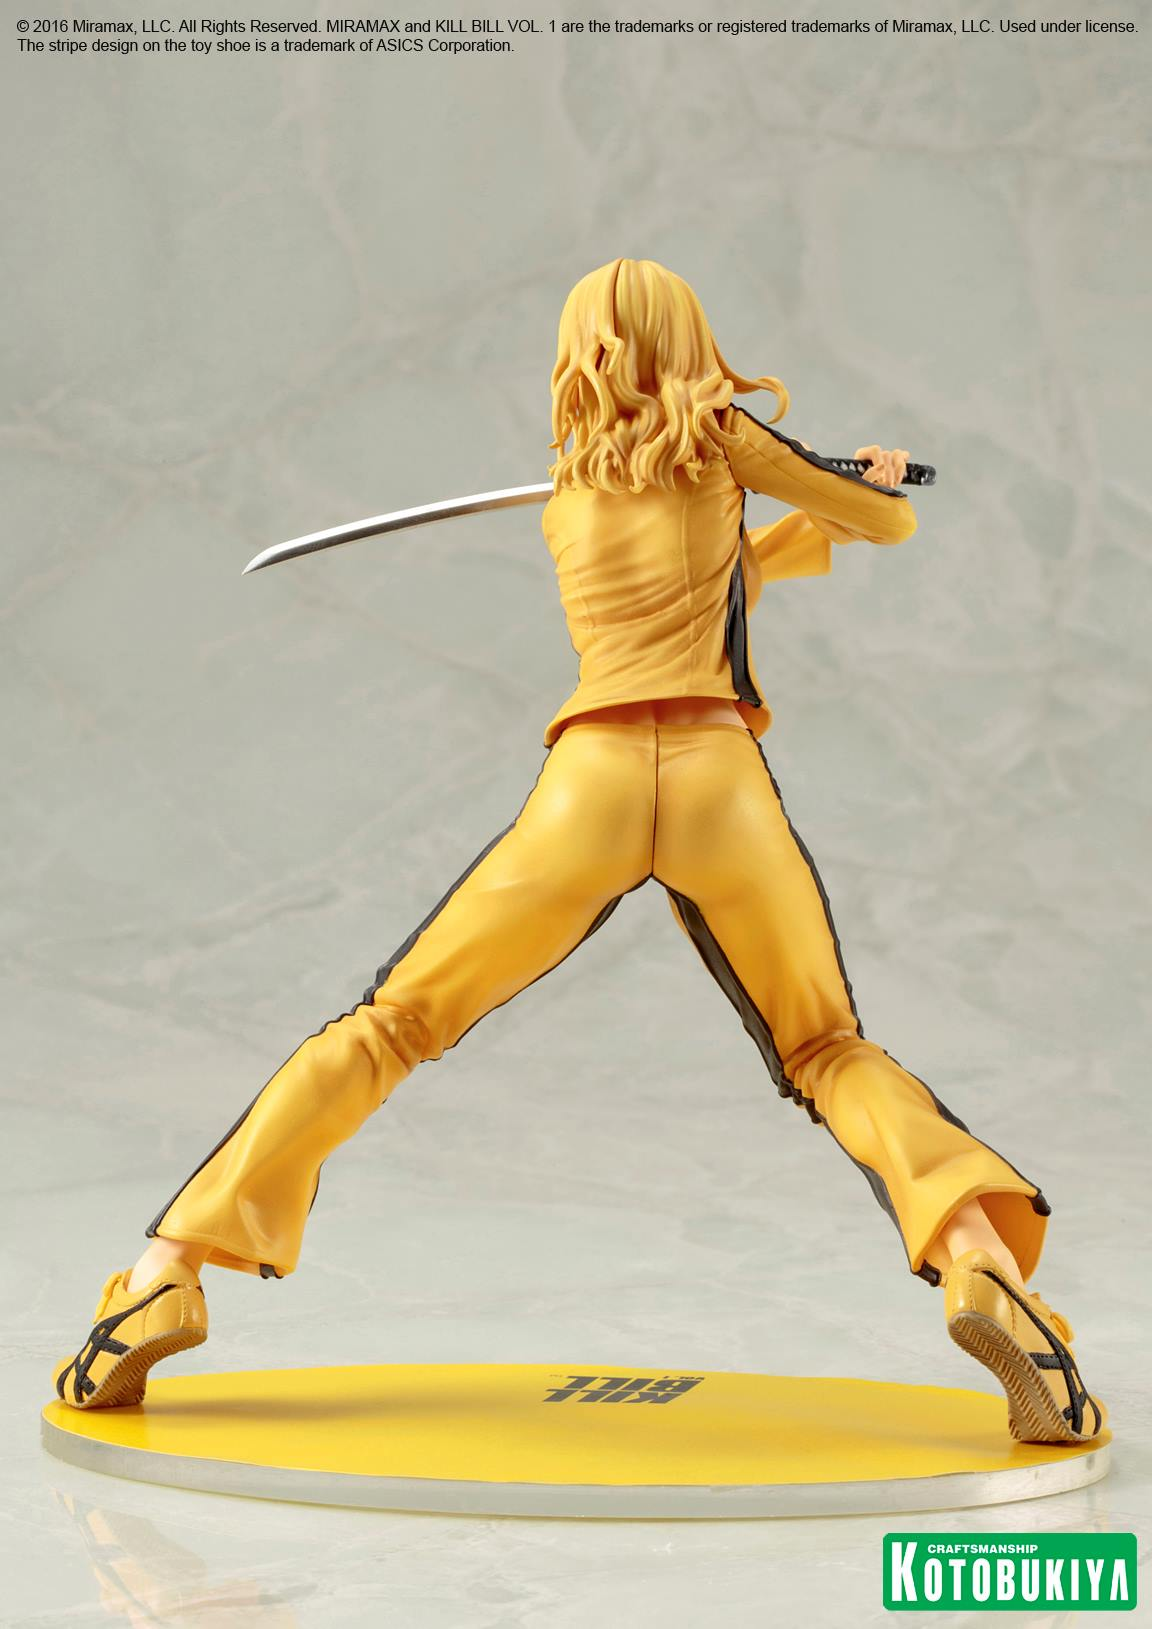 kill-bill-the-bride-bishouoj-statue-kotobukiya-4